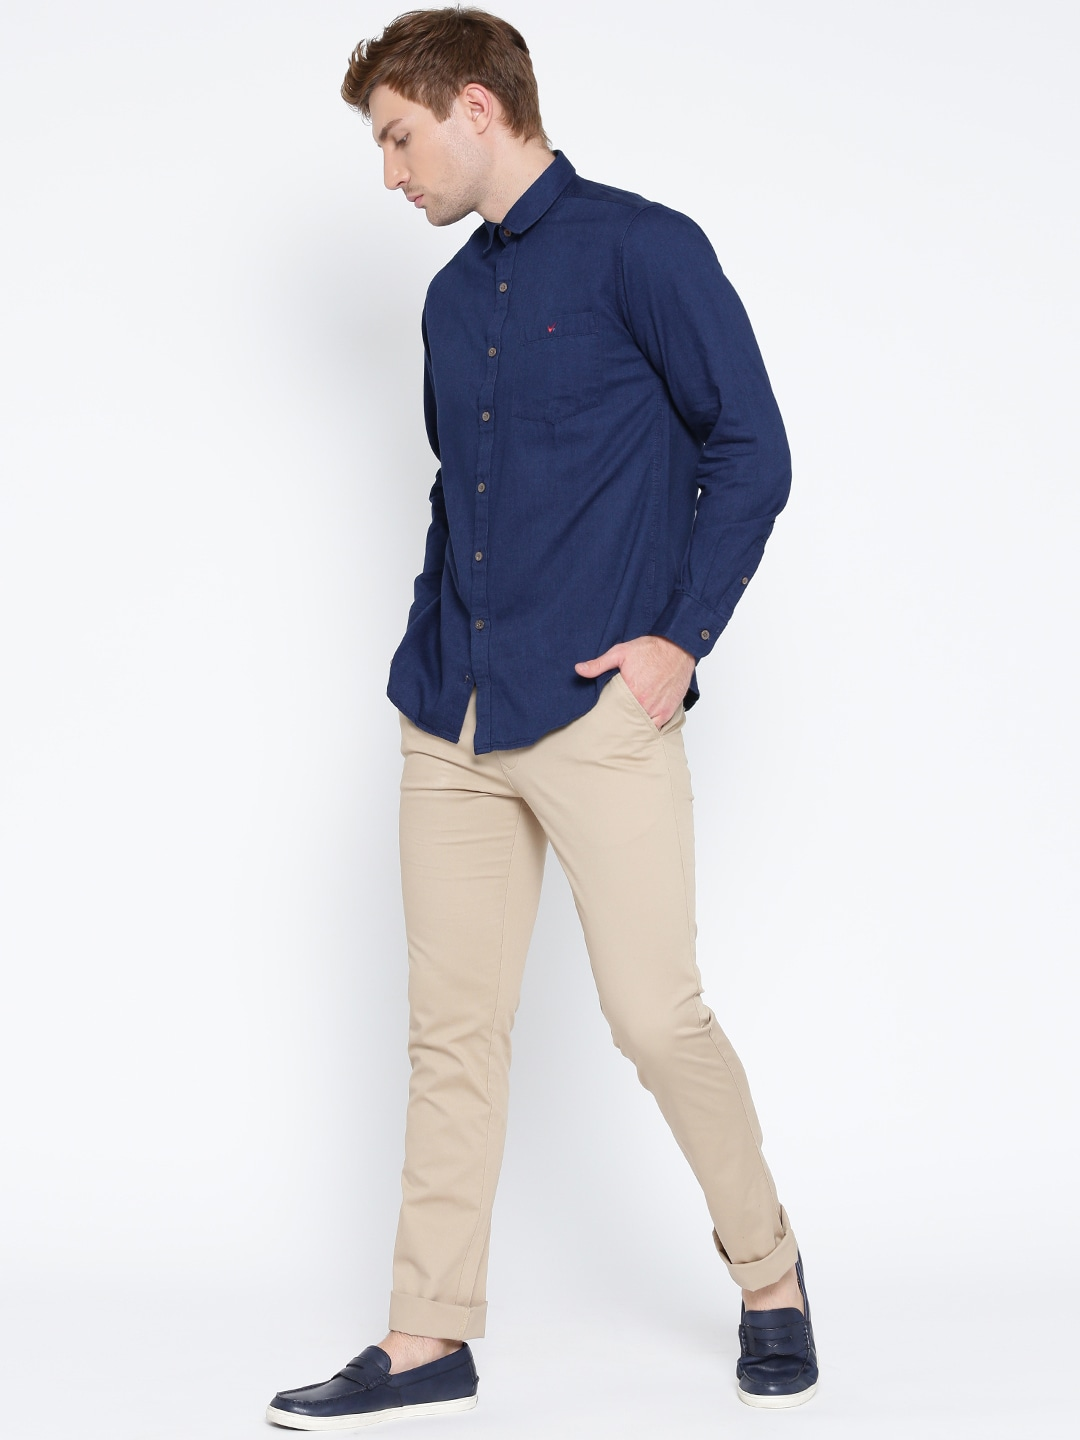 Dark Blue Shirts - Buy Dark Blue Shirts online in India